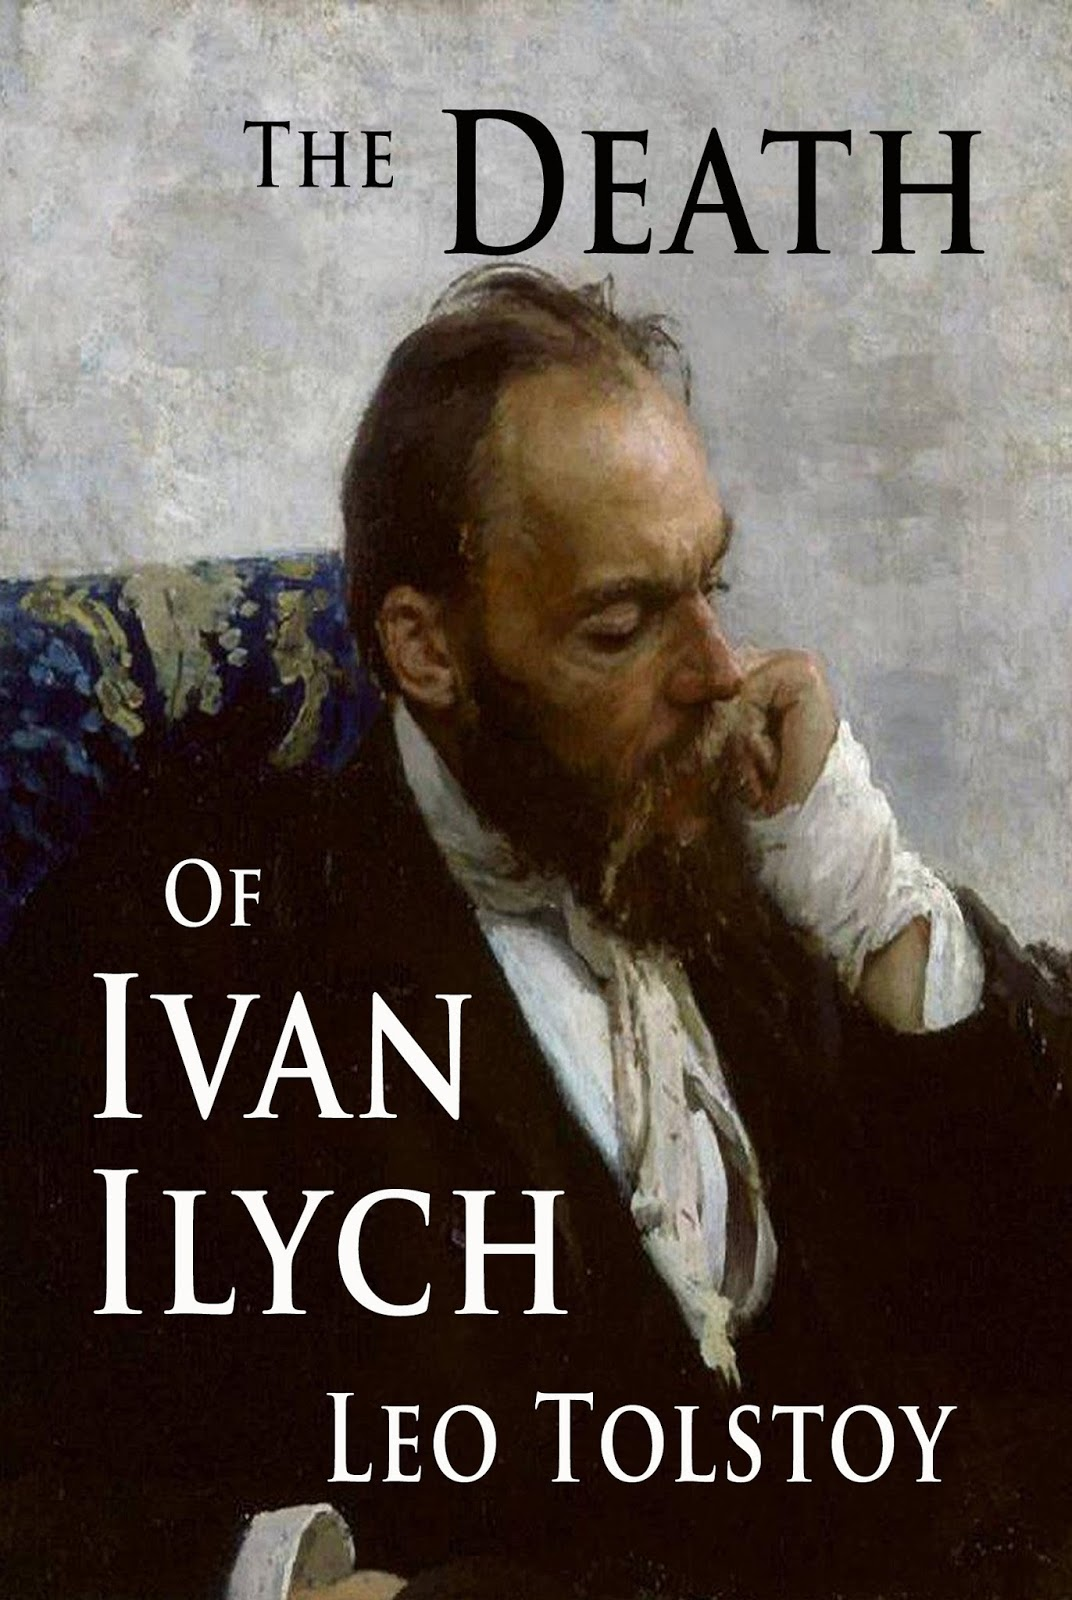 my world  response to the death of ivan ilyich